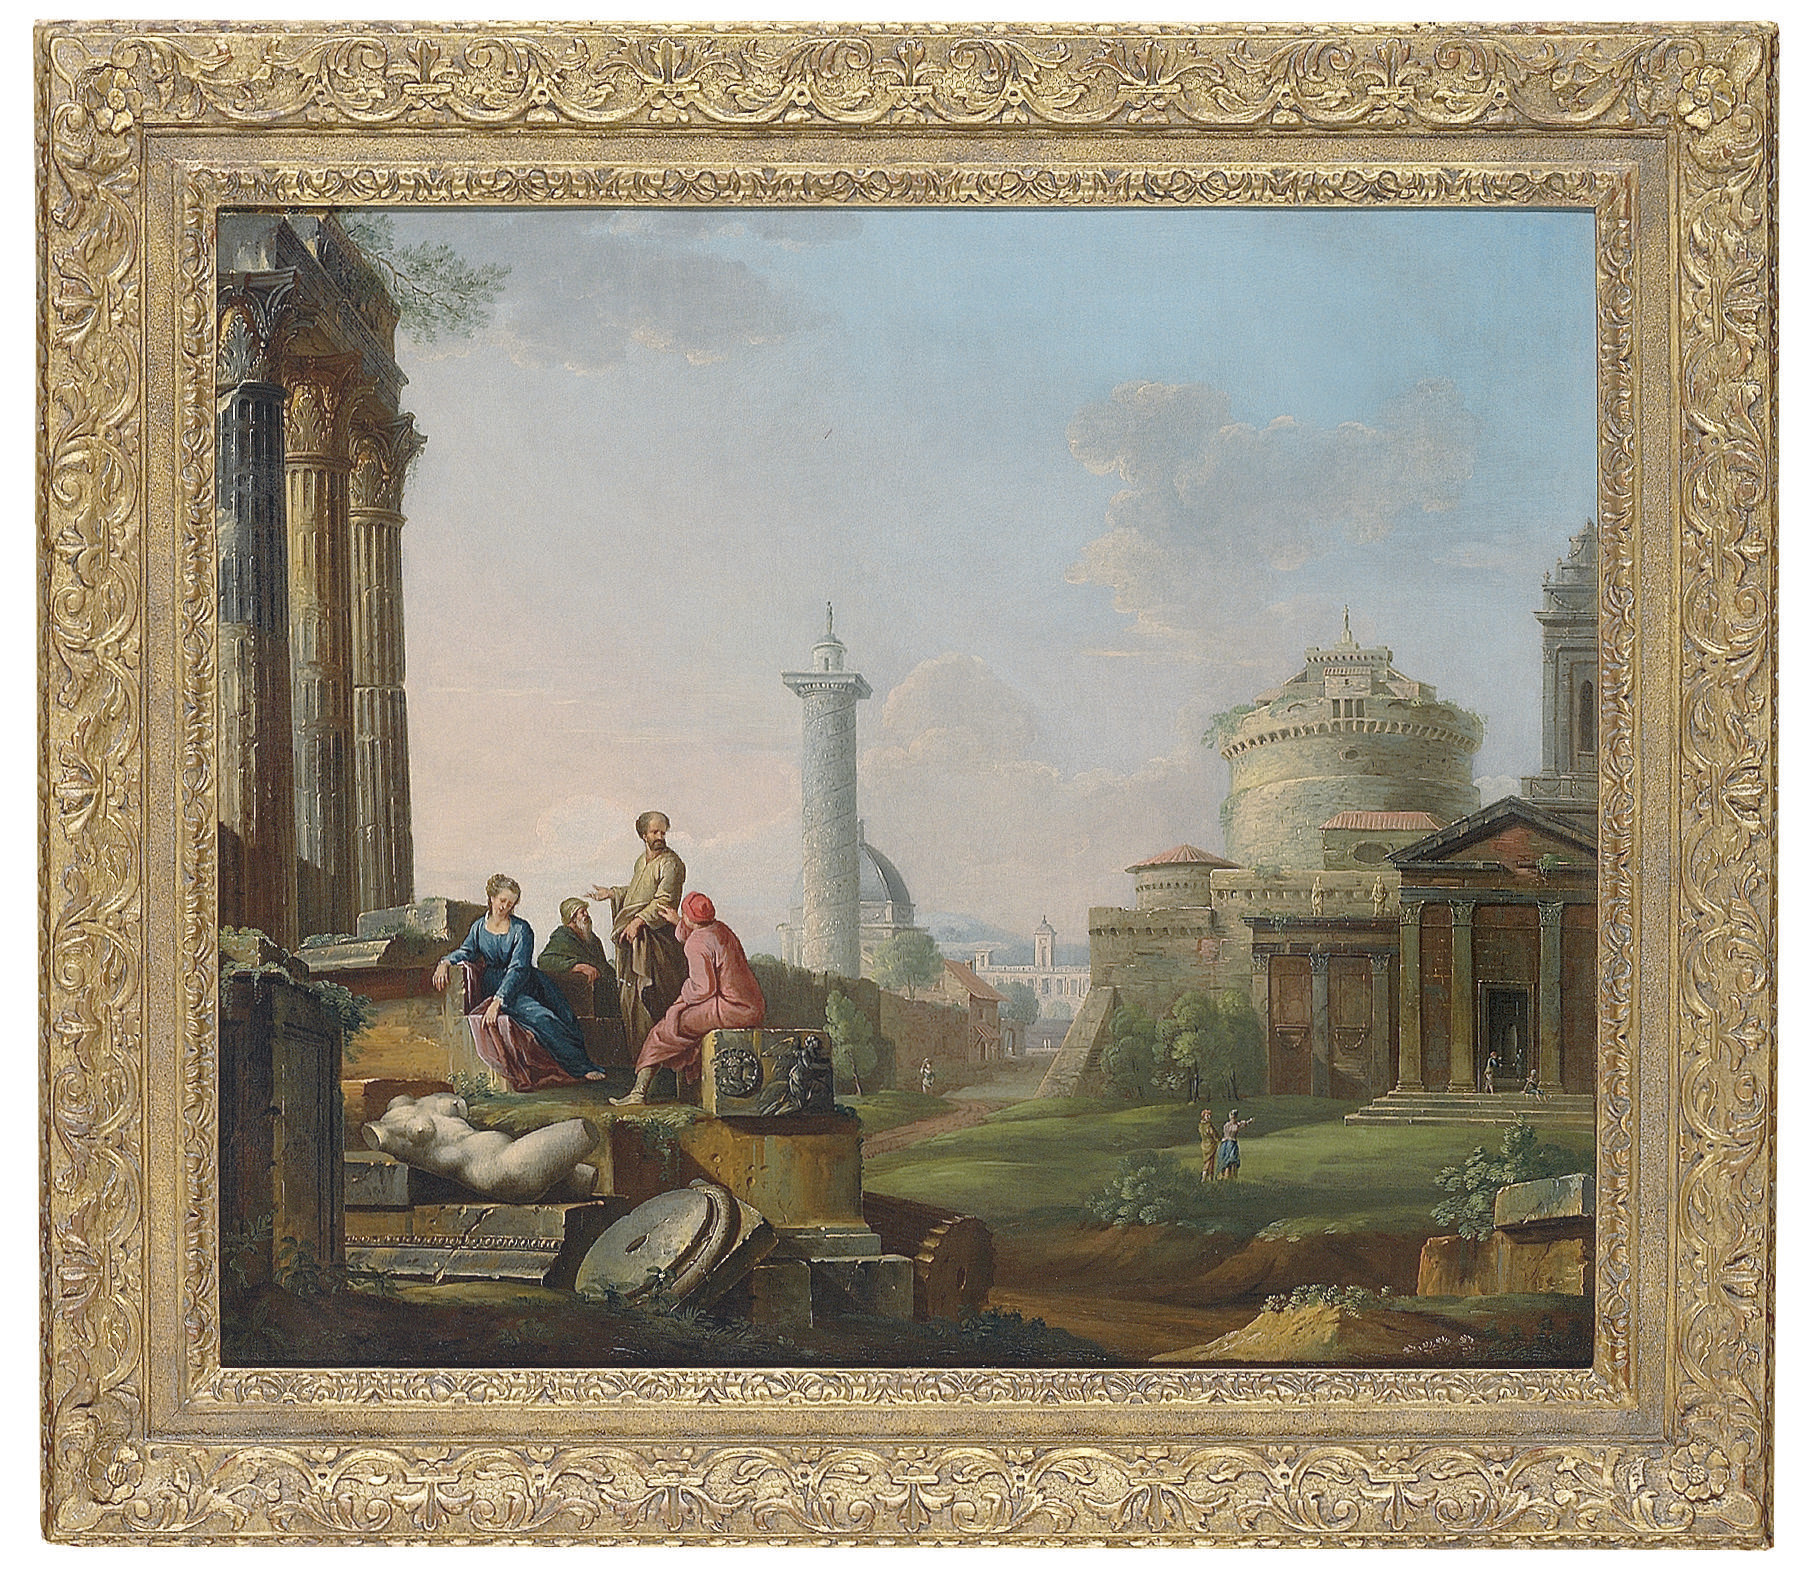 A Roman capriccio with the Castel Sant'Angelo and Trajan's Column, and other ruins, with figures